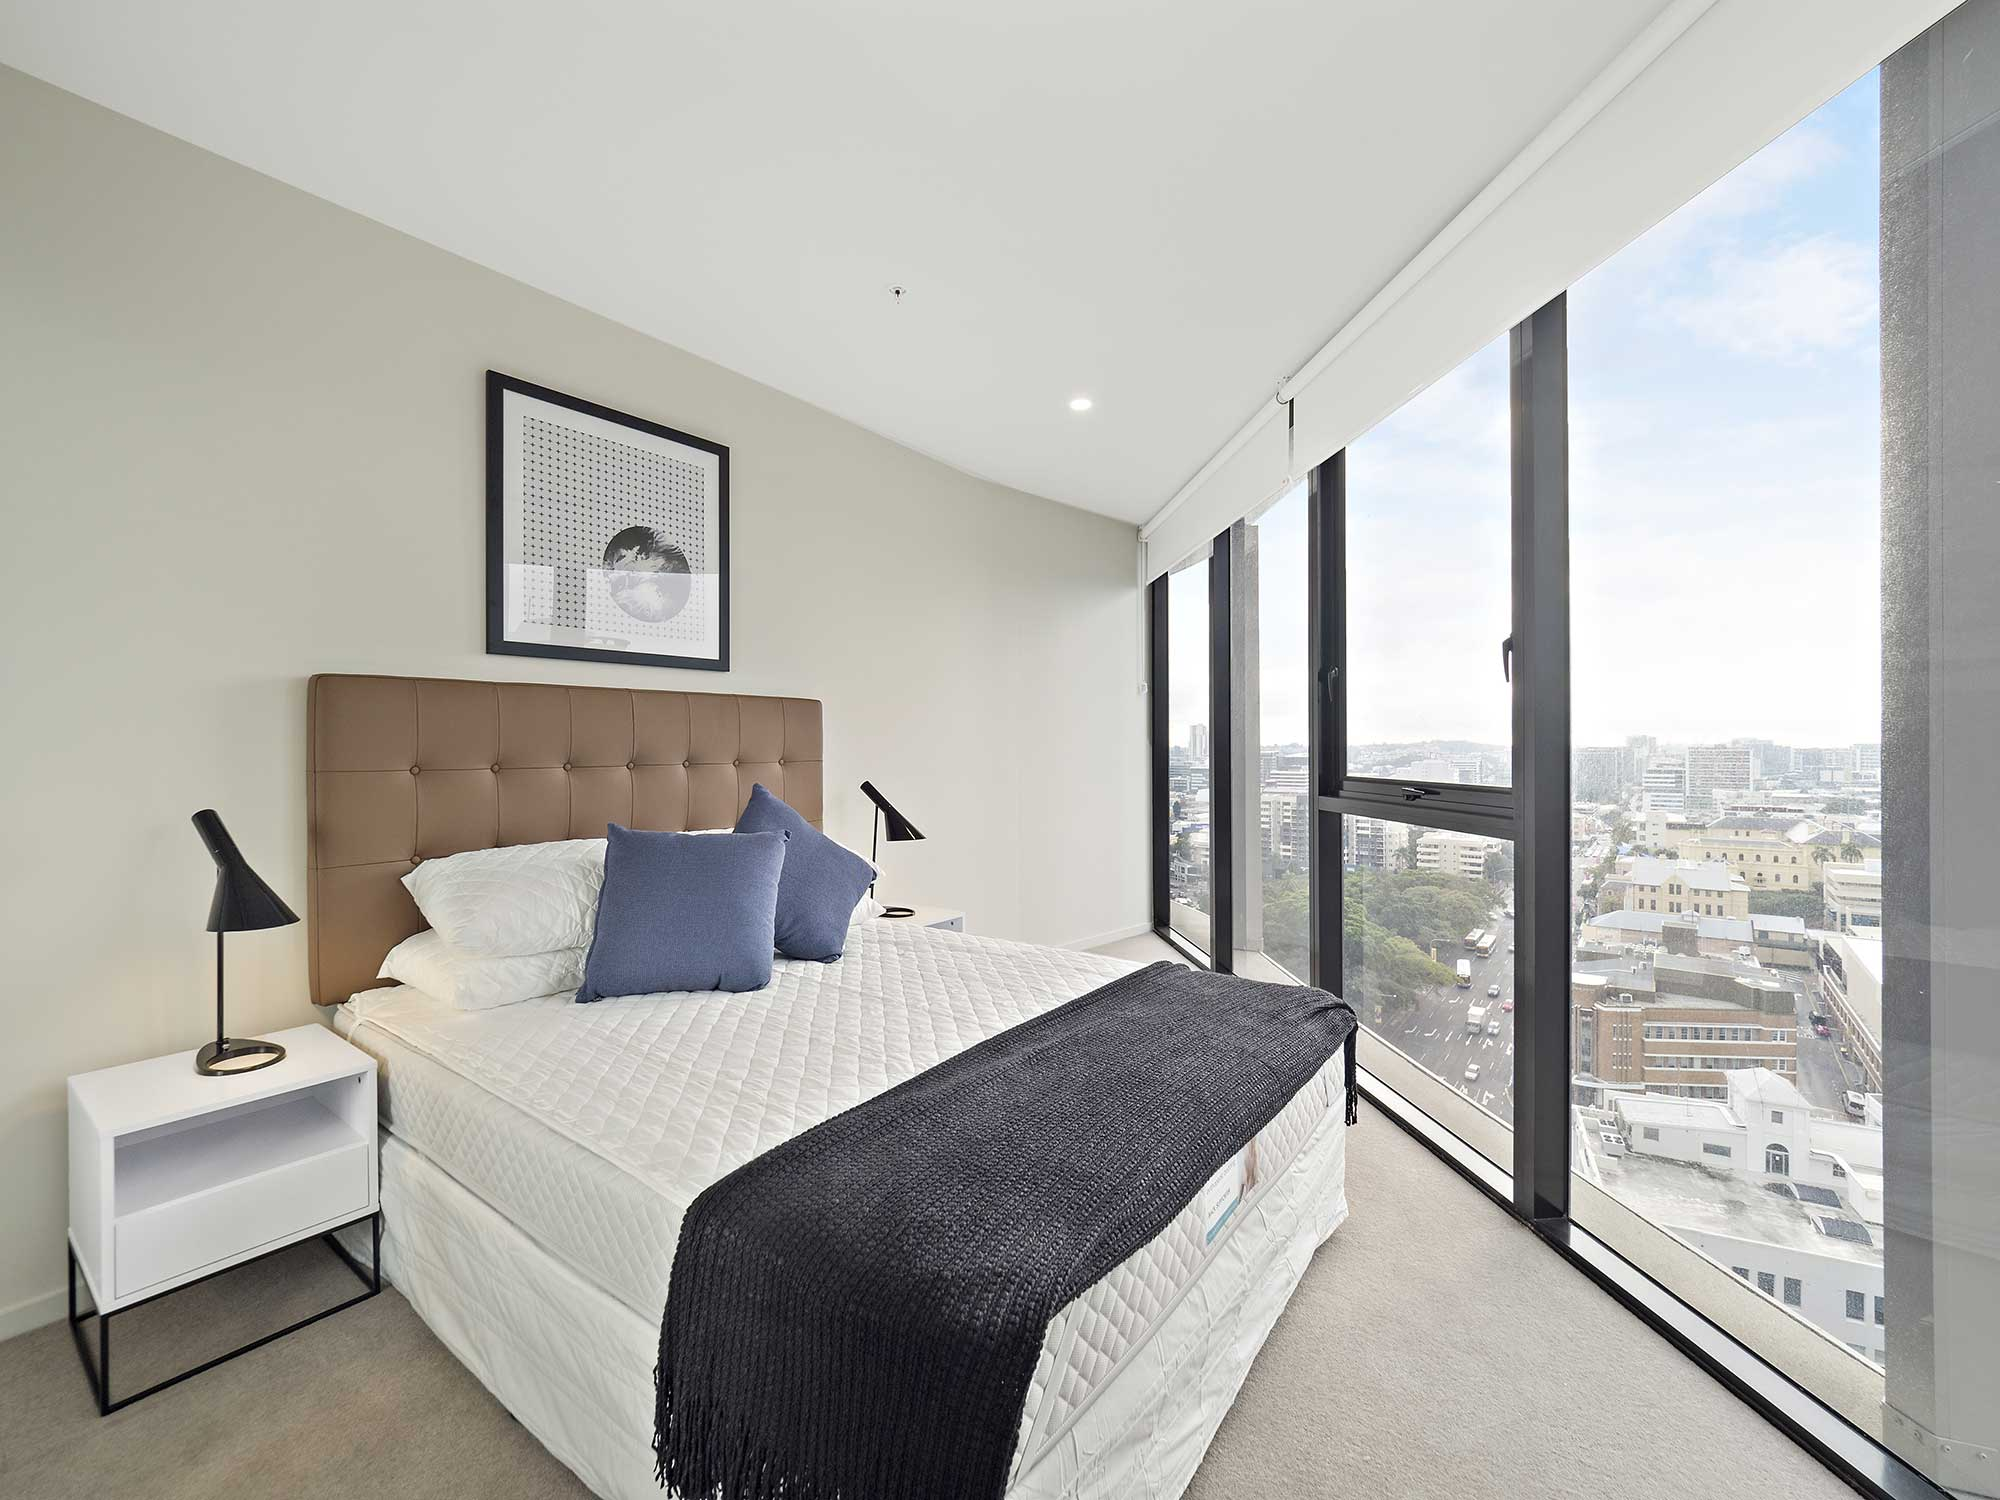 Real estate apartment photography Spire Residences, Apartment 1904 bedroom, August 2018